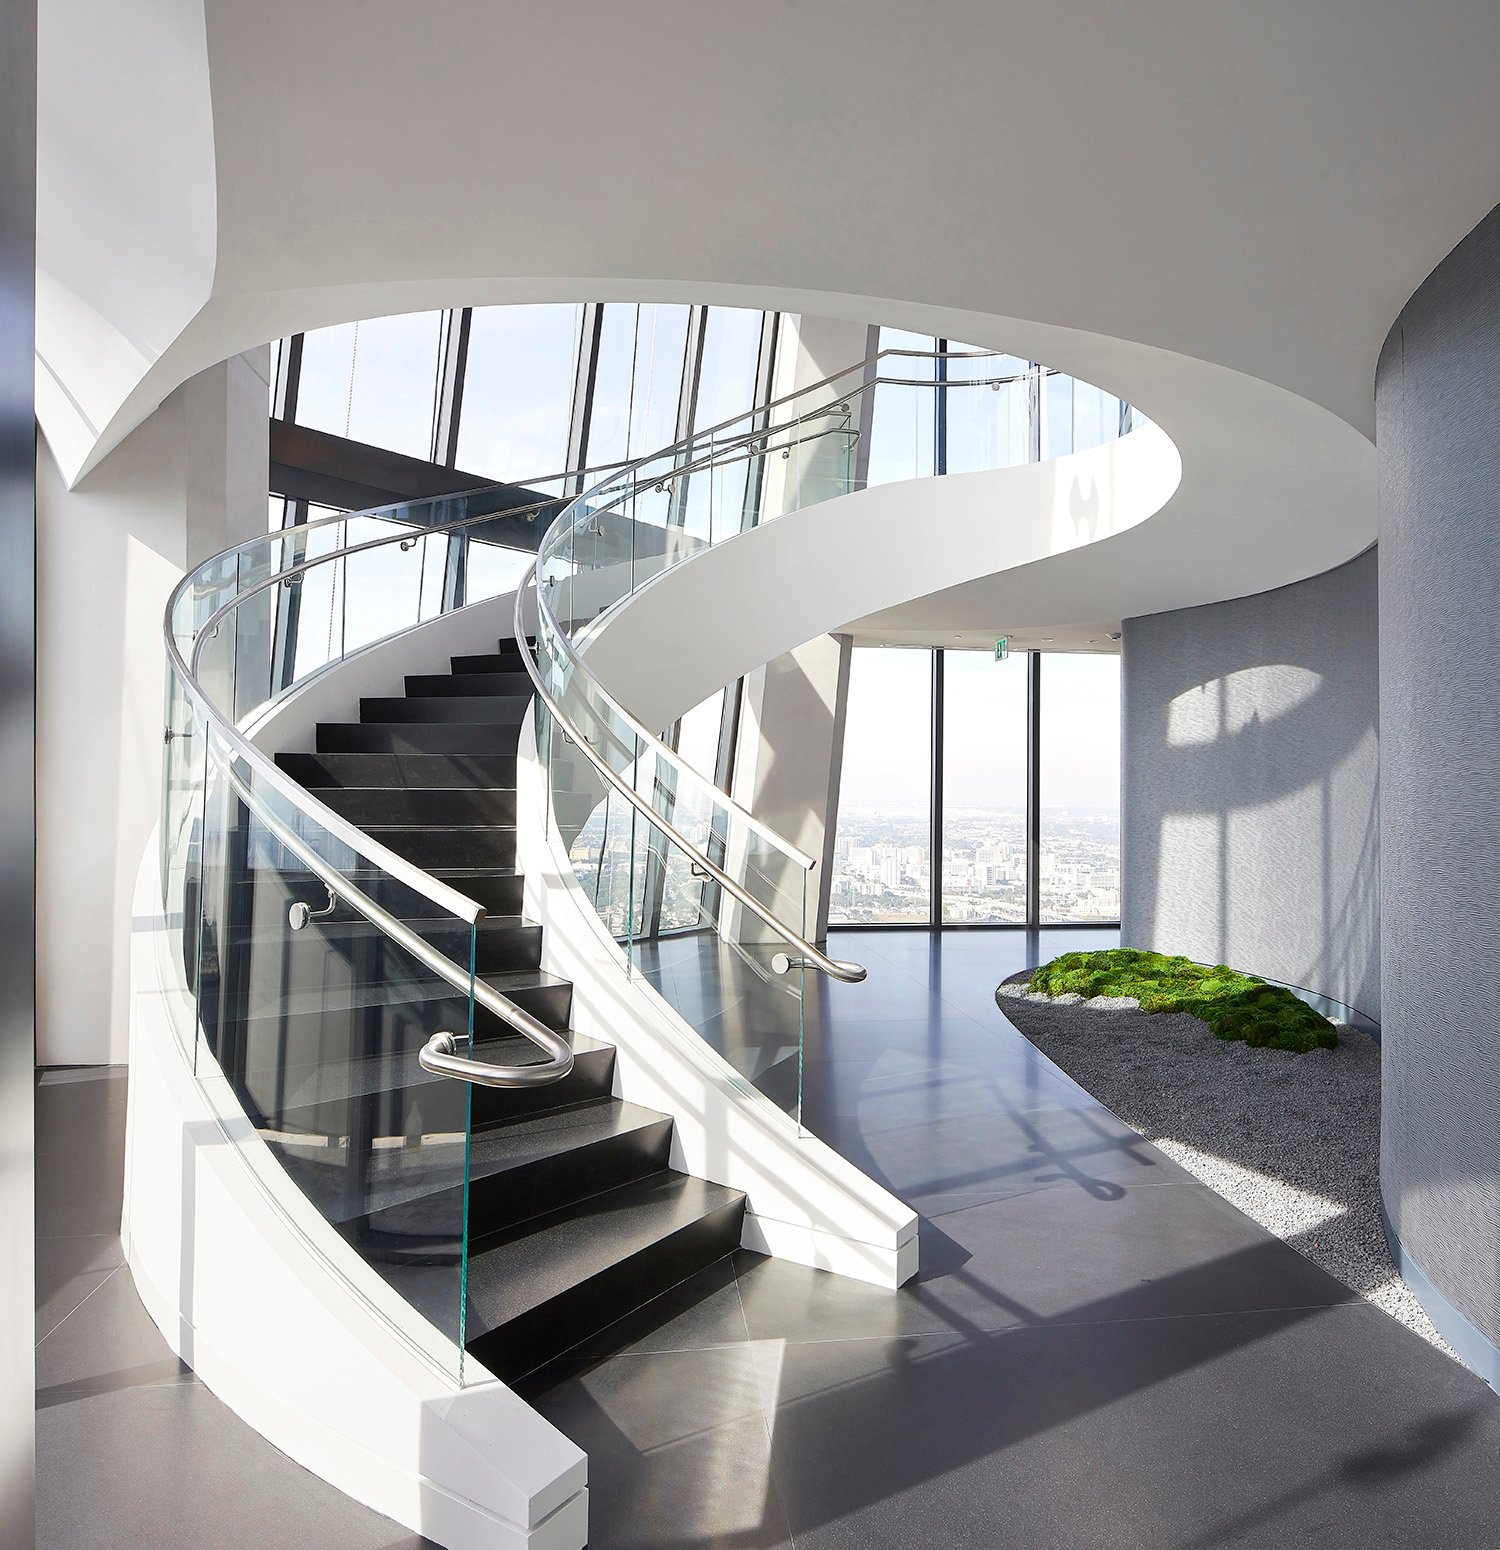 One Thousand Museum in Miami by Zaha Hadid Architects Photo by Hufton+Crow